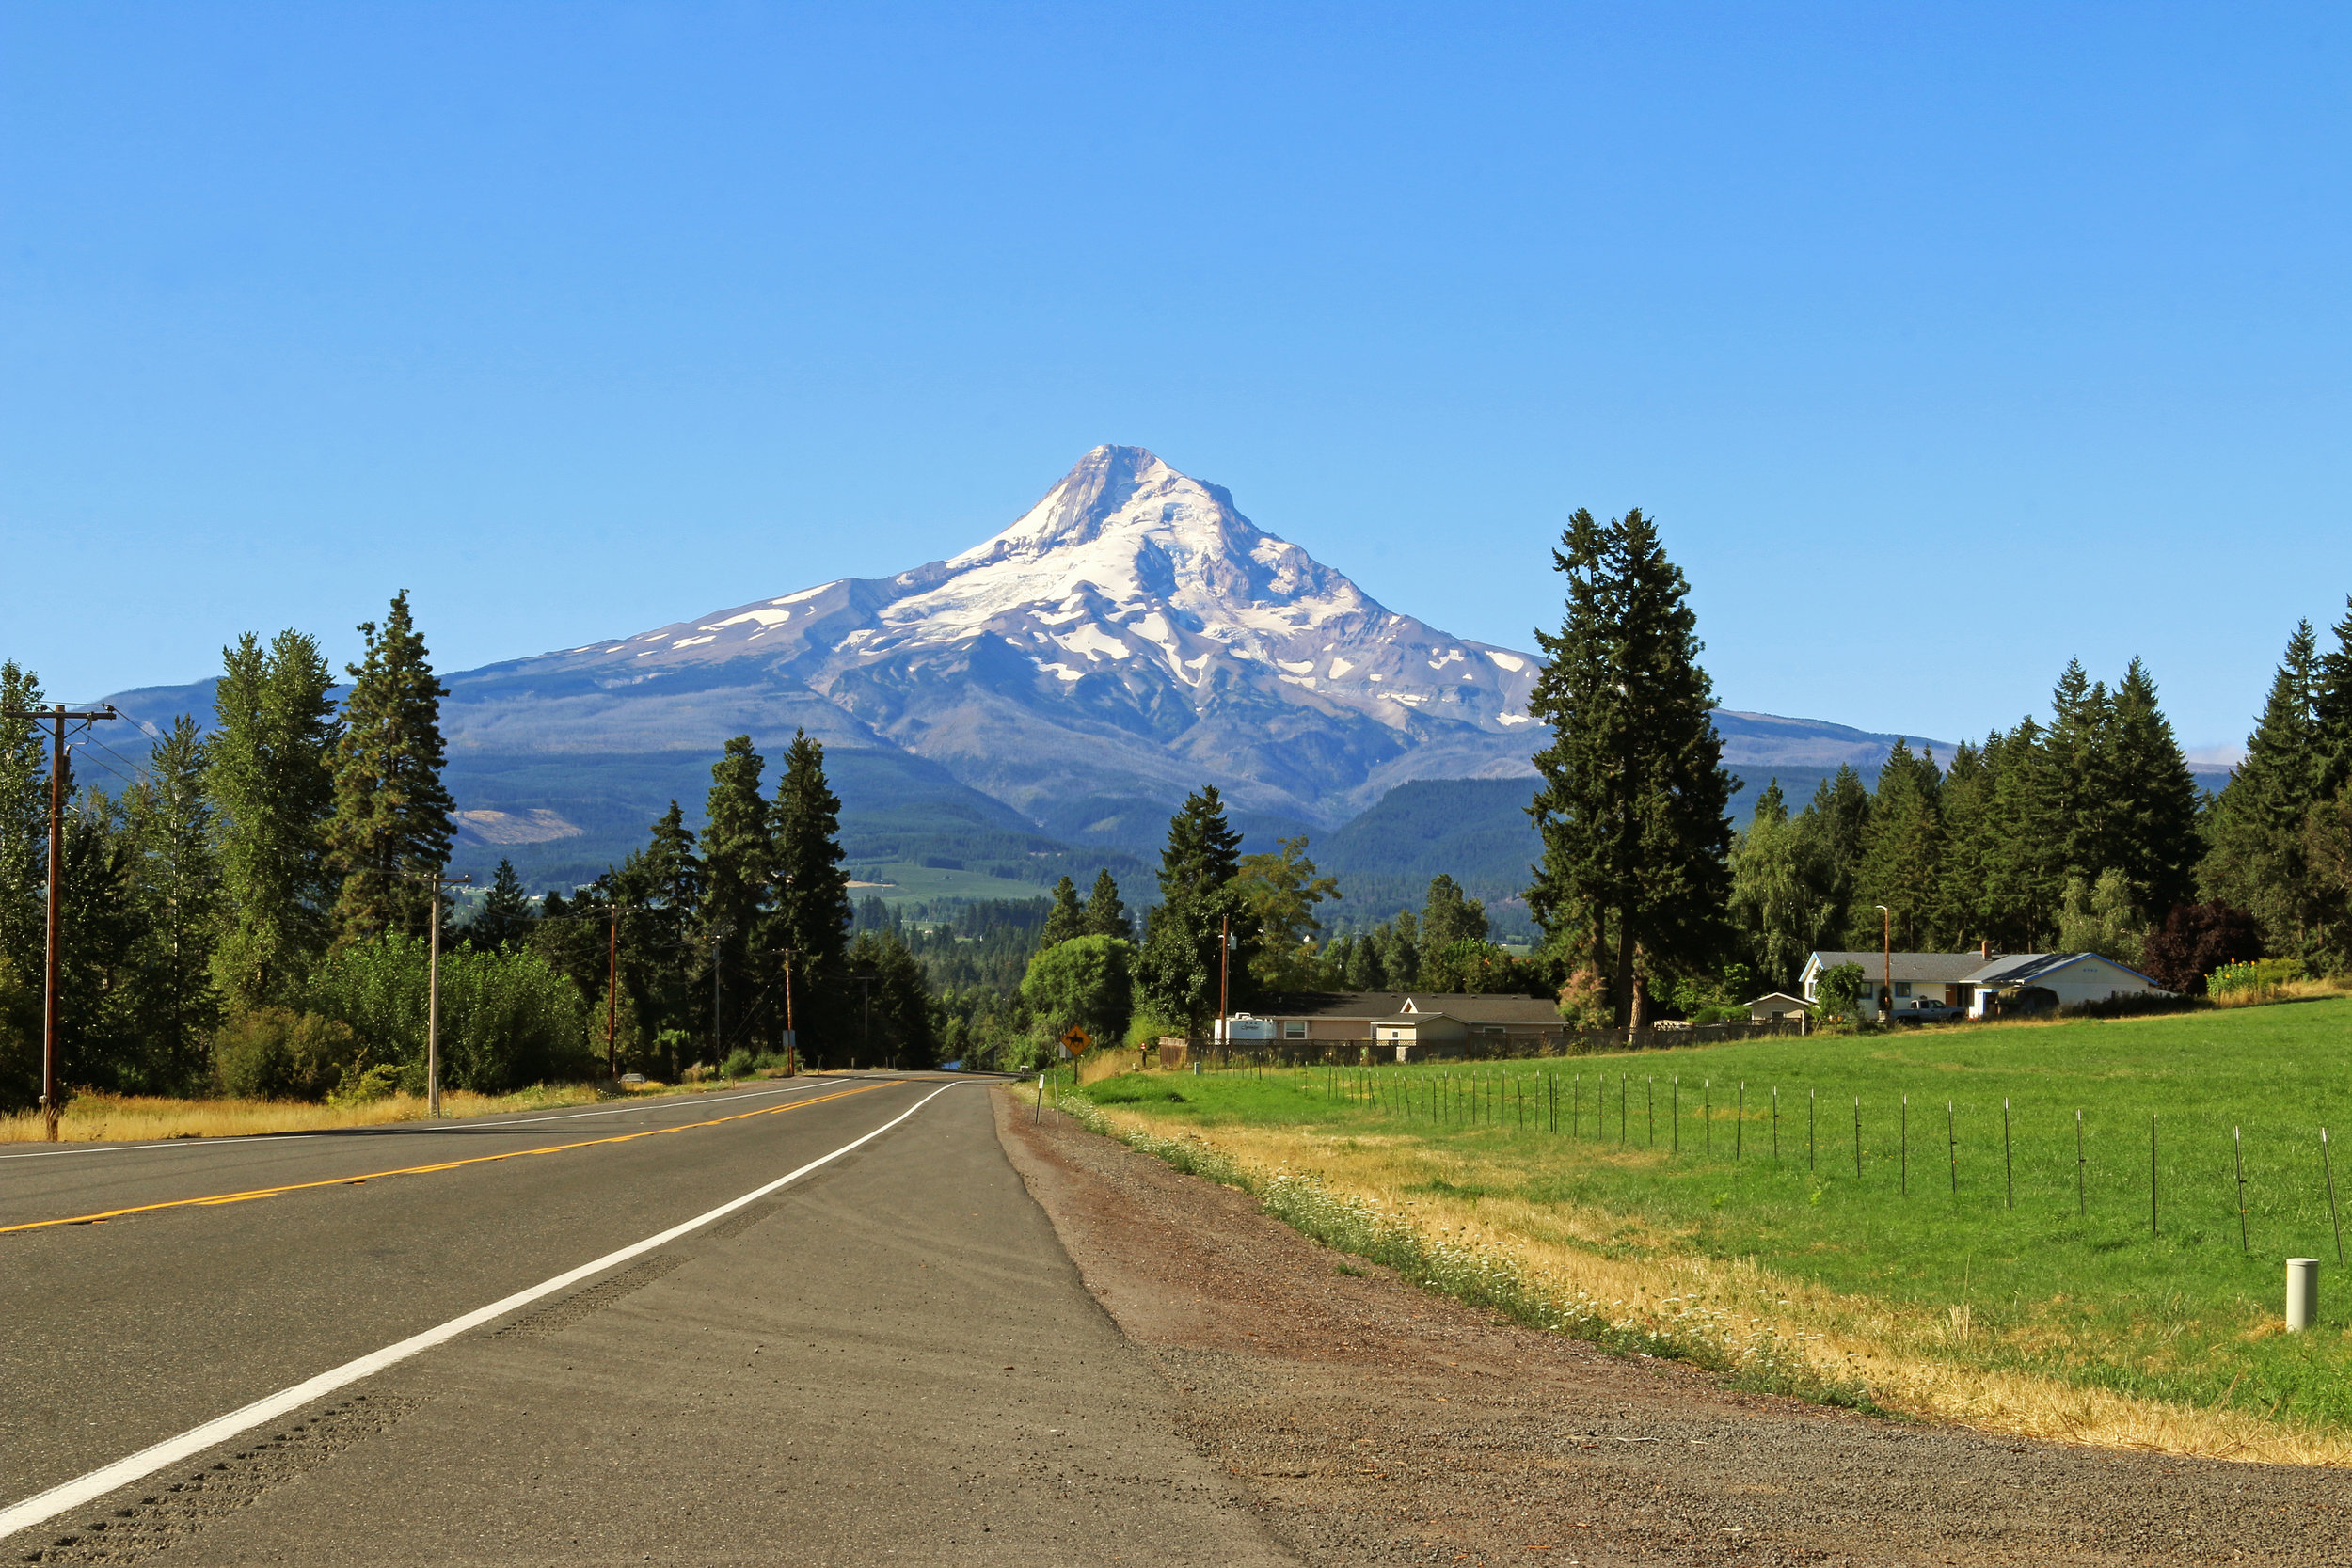 Where the magic happens - The base of Mount Hood, OregonSend us an e-mail at any time; we'll get back to you as soon as we put our cup of coffee down!